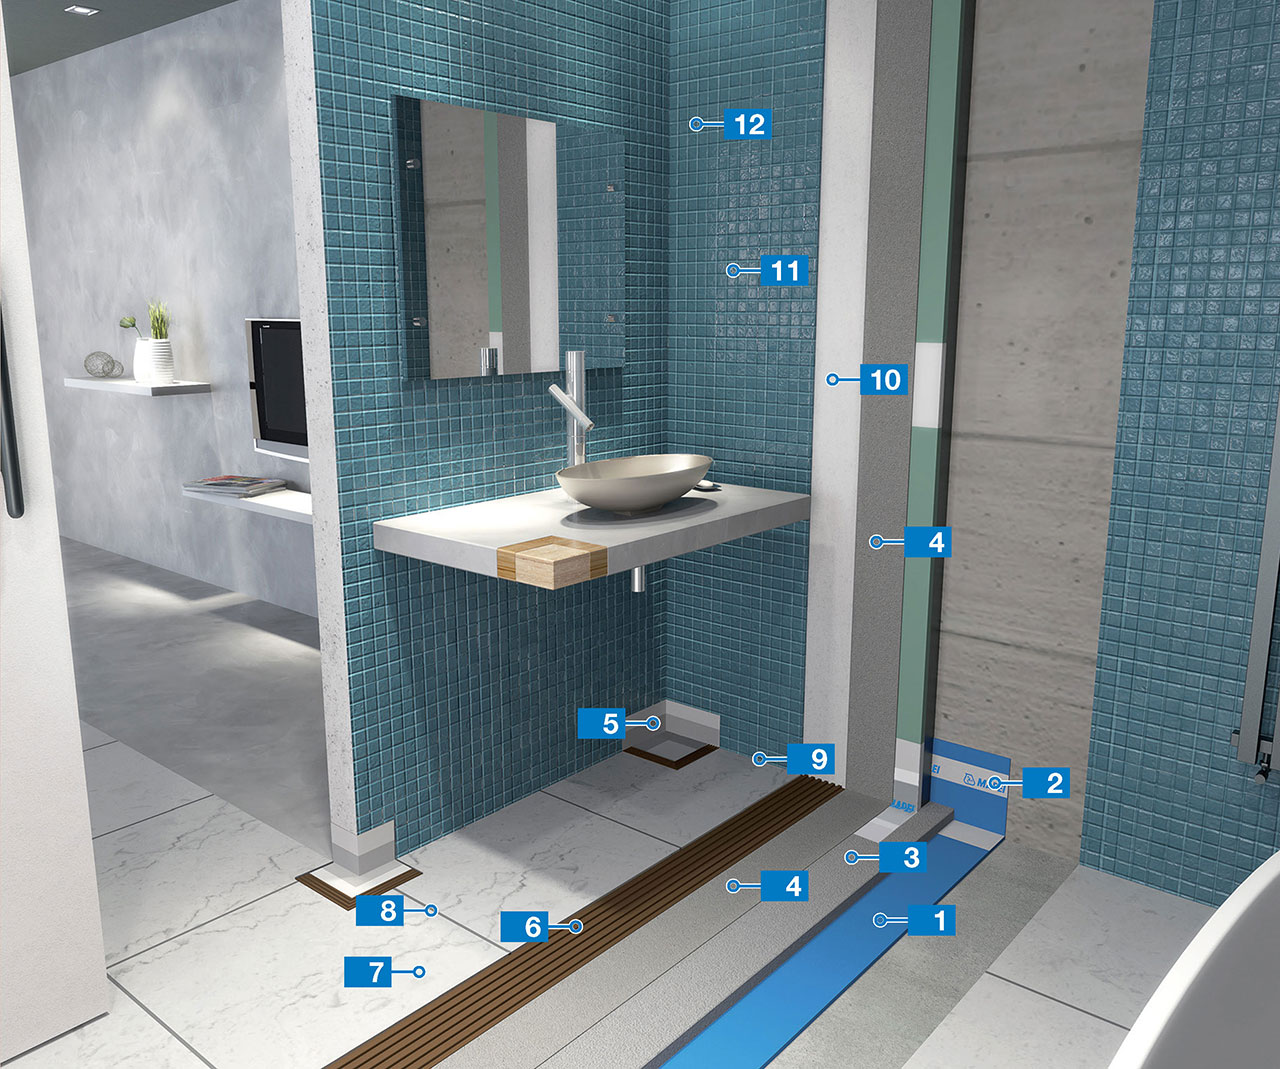 System Far Waterproofing And Soundproofing Ceramic And Glass Mosaic  Coverings In Bathrooms And Wet Environments